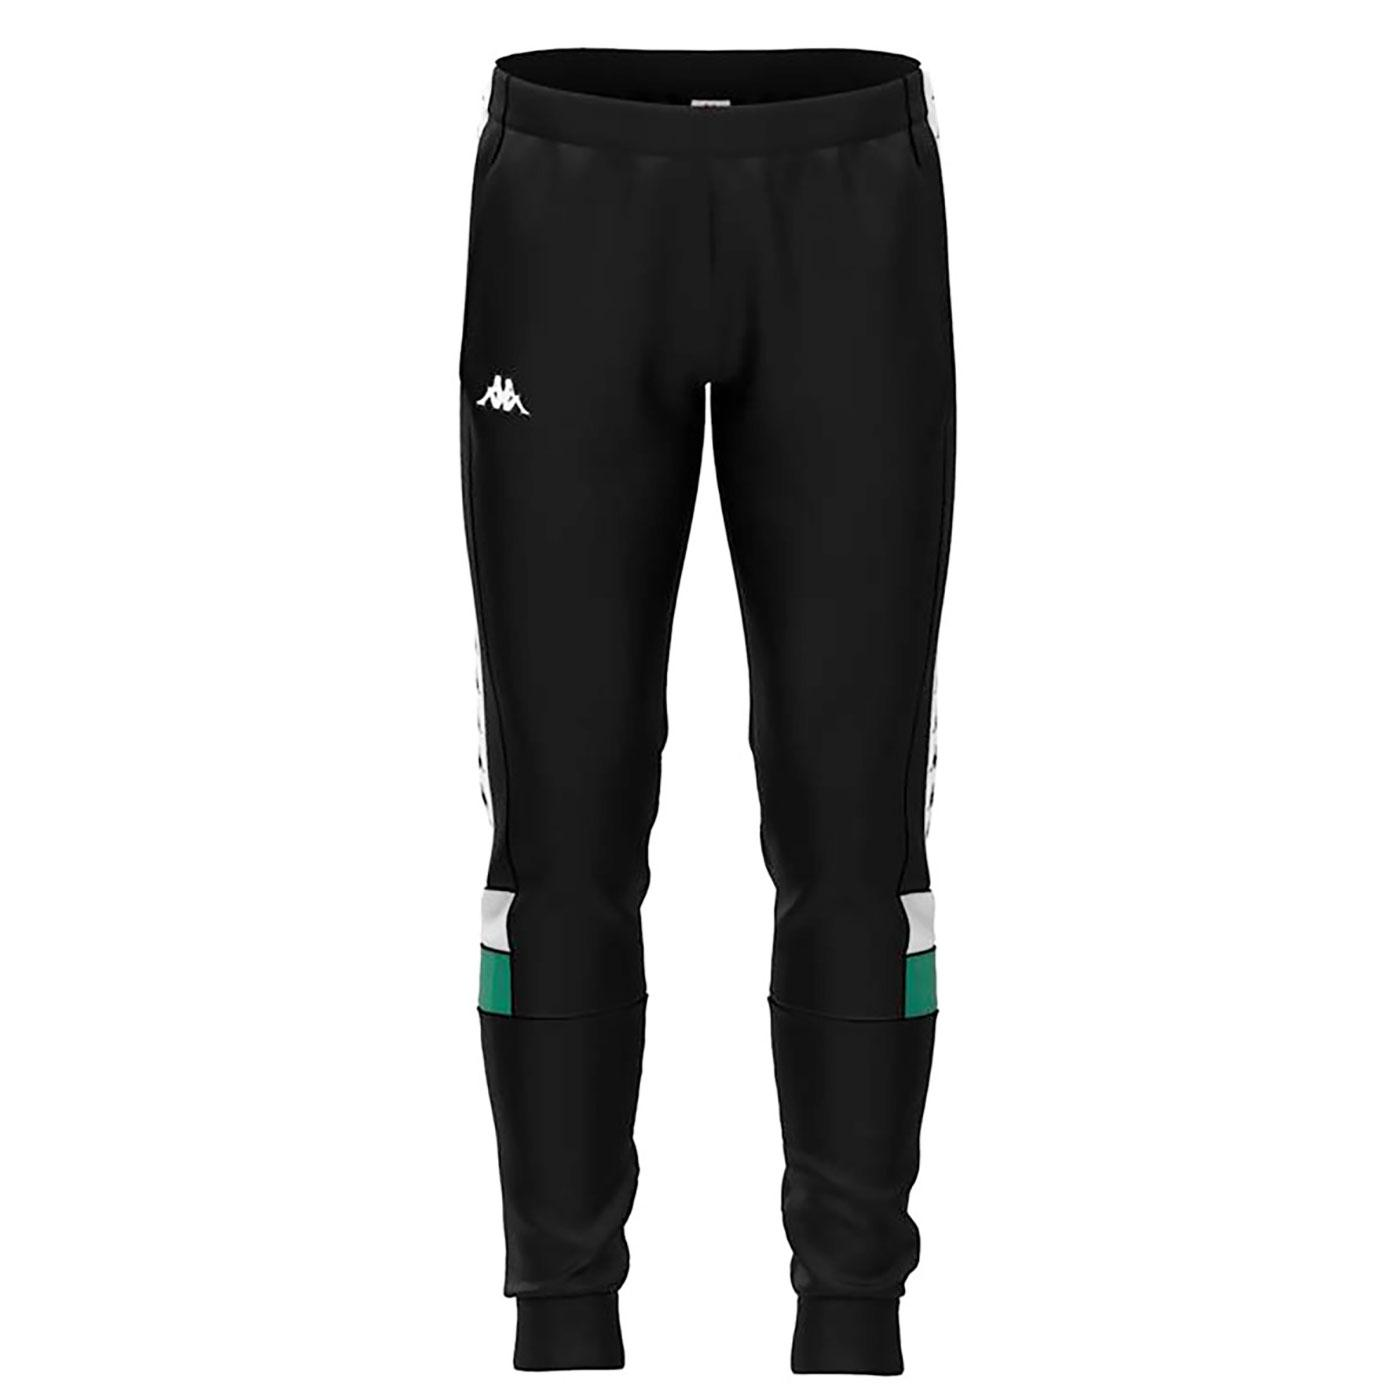 Mens KAPPA Retro Panel Trim Tracksuit Bottoms